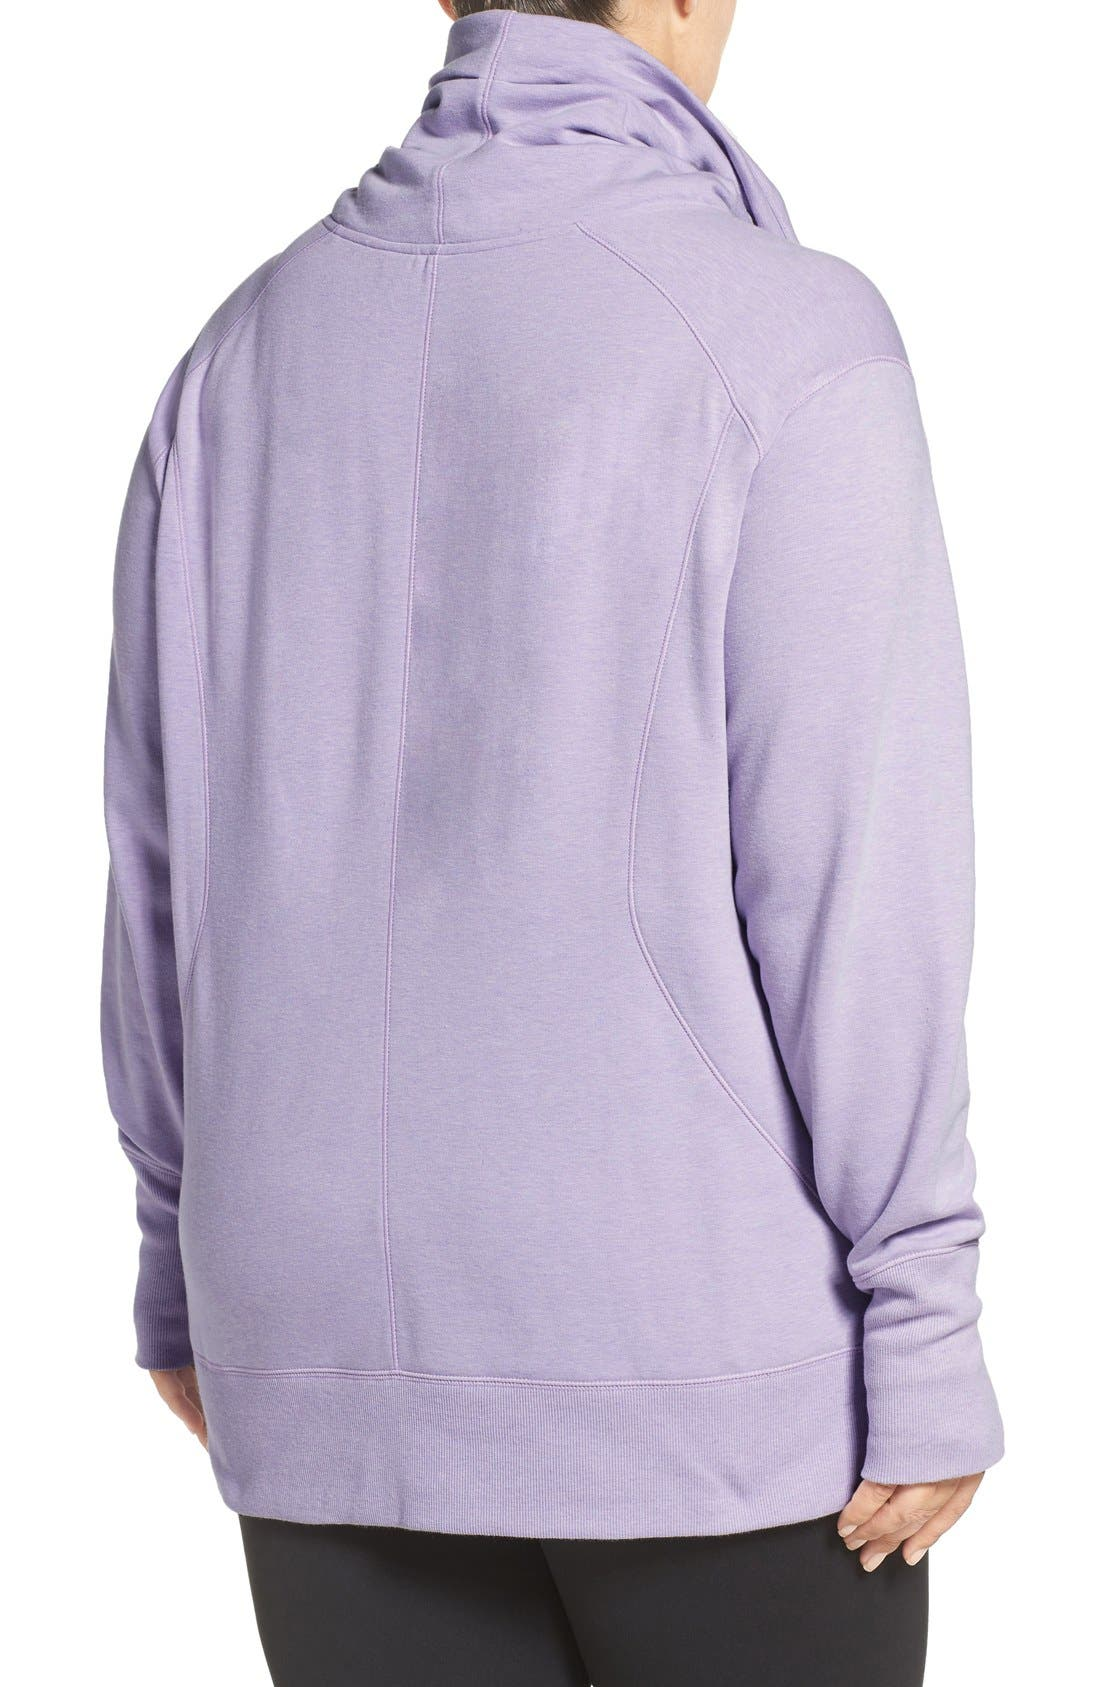 Alternate Image 2  - Zella 'Frosty' Asymmetrical Zip Pullover (Plus Size)